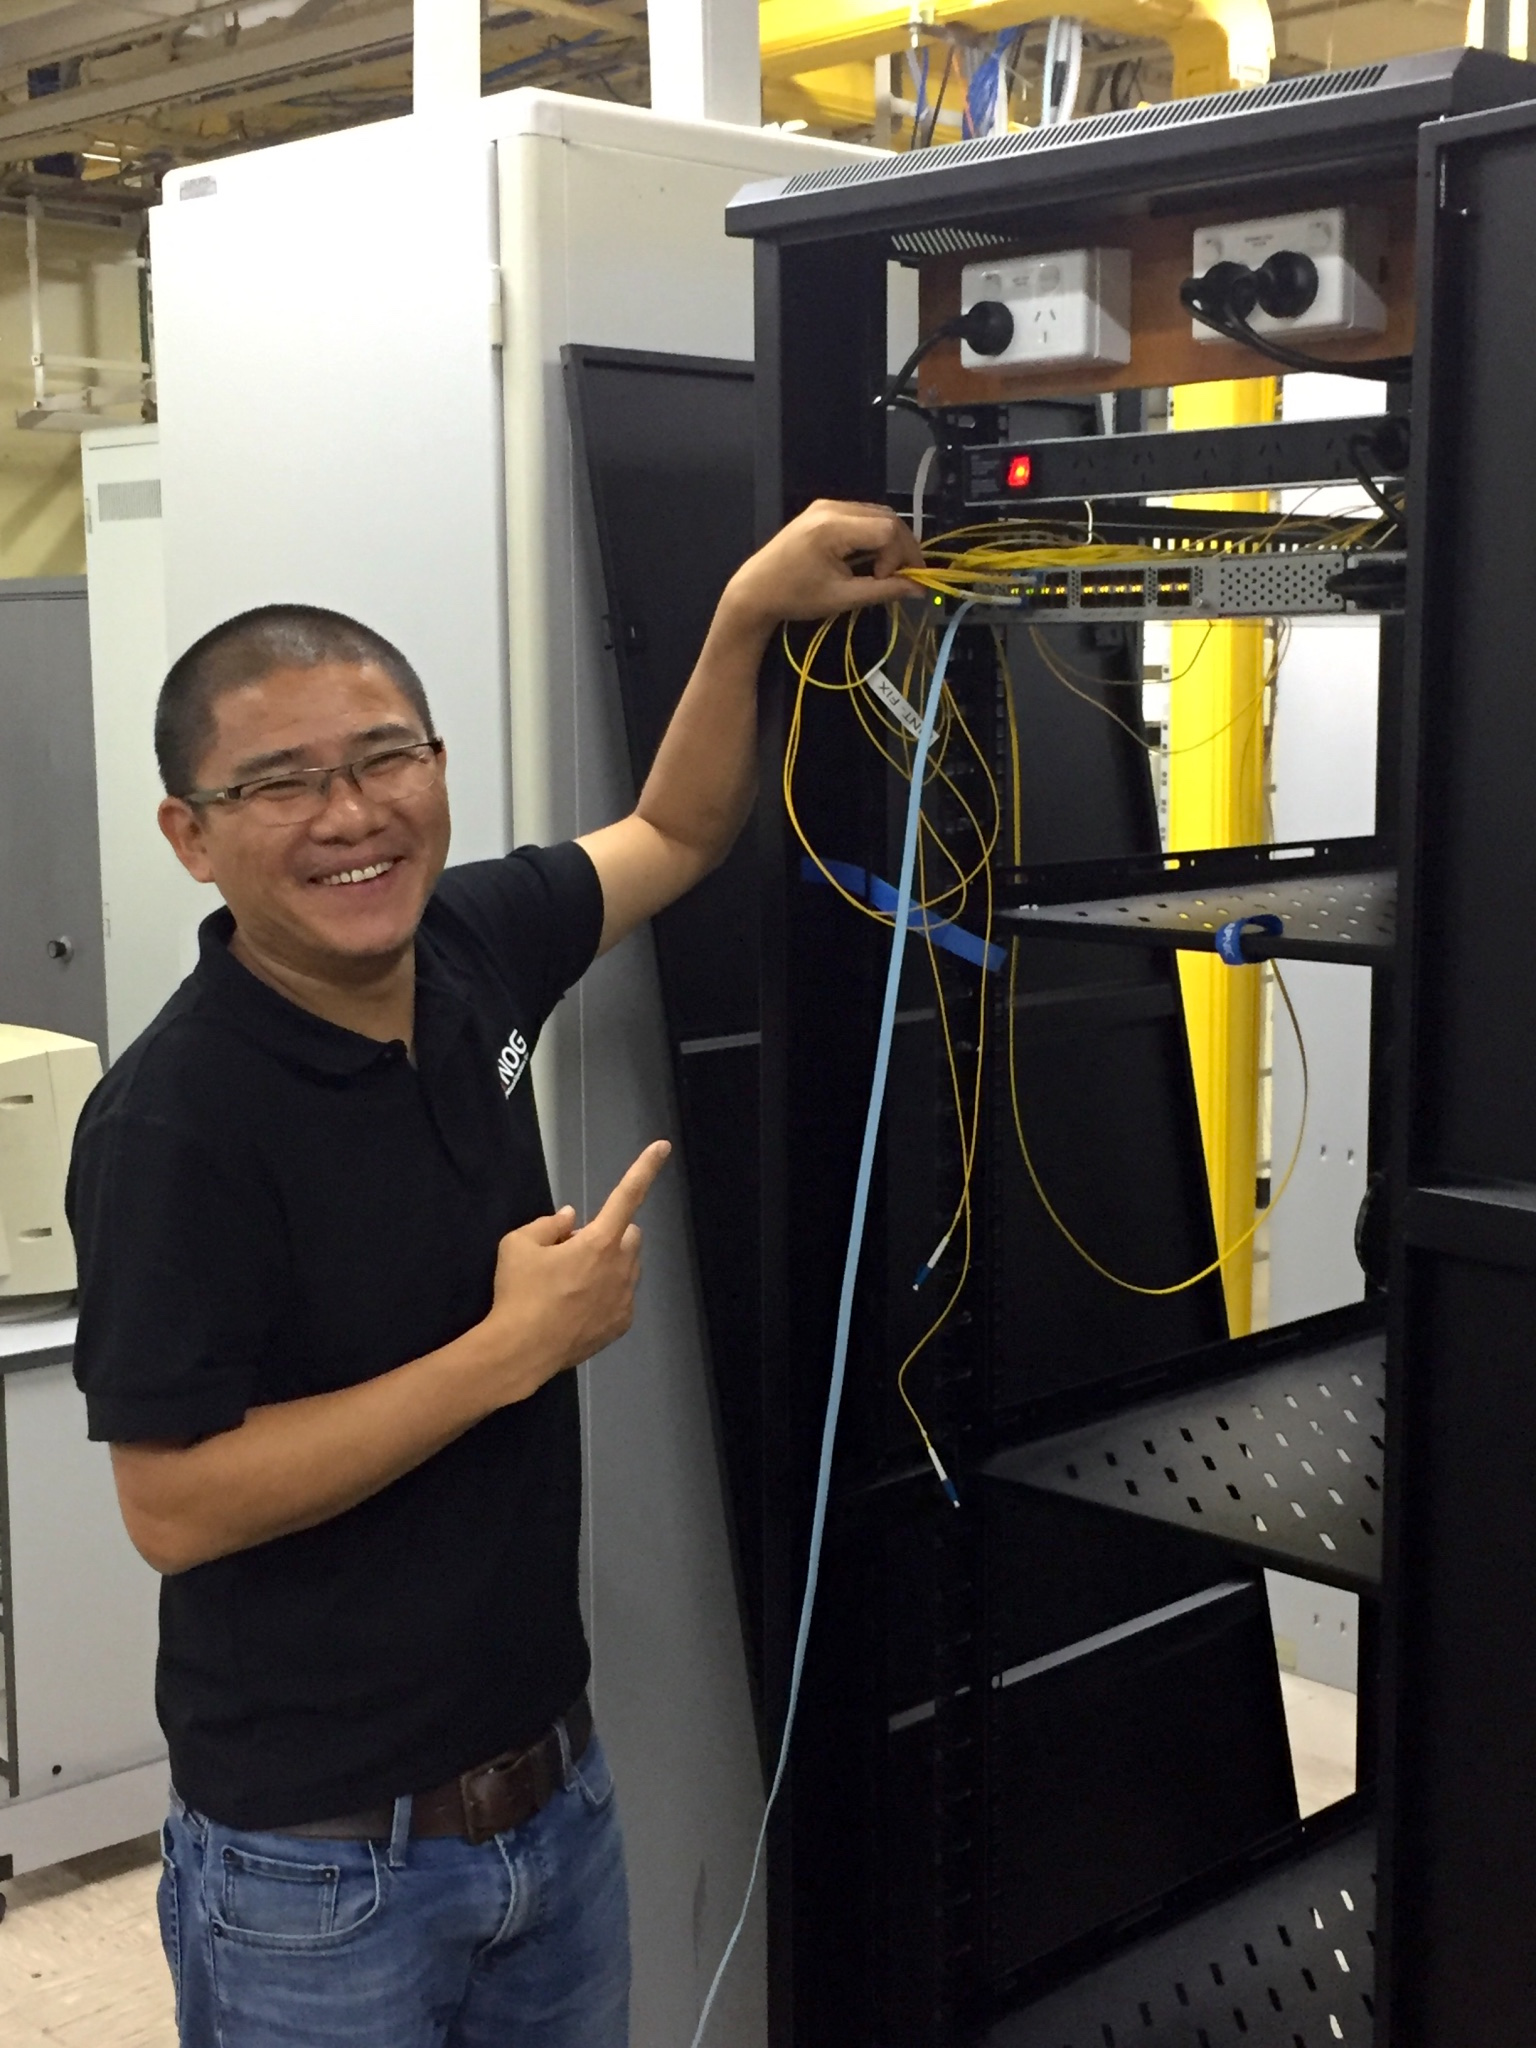 Tashi Phuntsho (APNIC) helped install the switch.